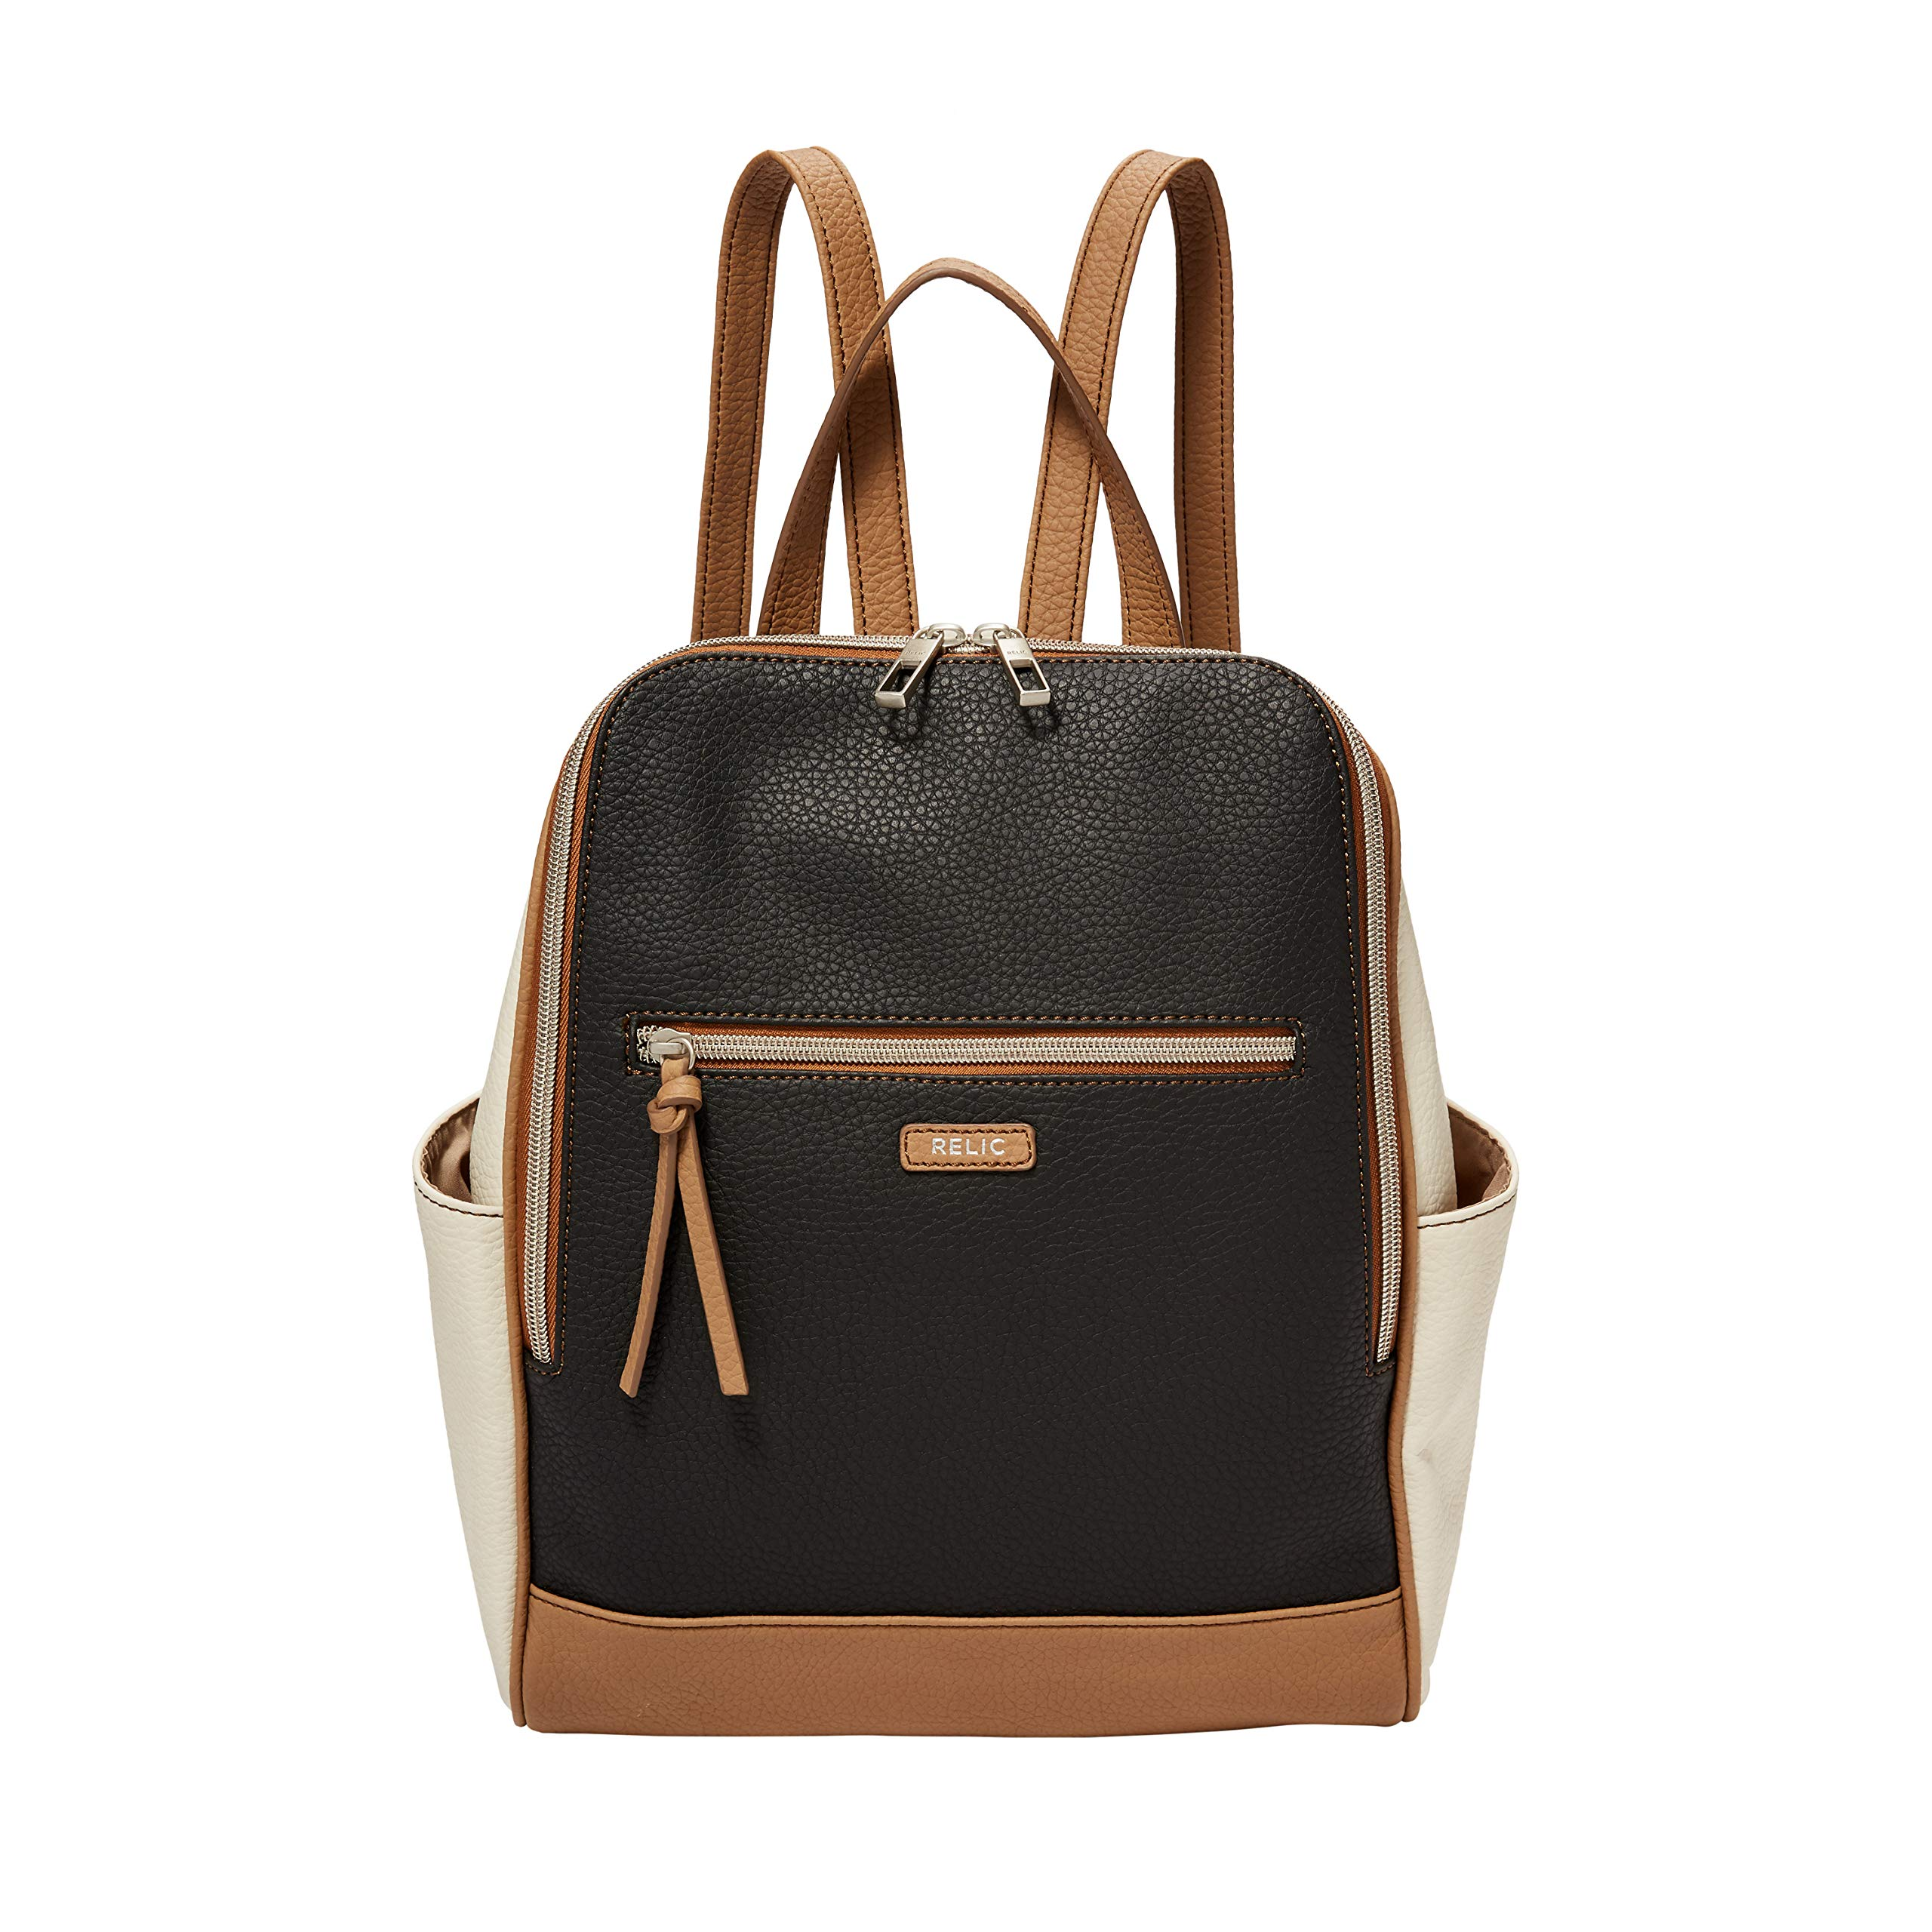 Relic Kinsley Backpack Black Multi by Relic by Fossil